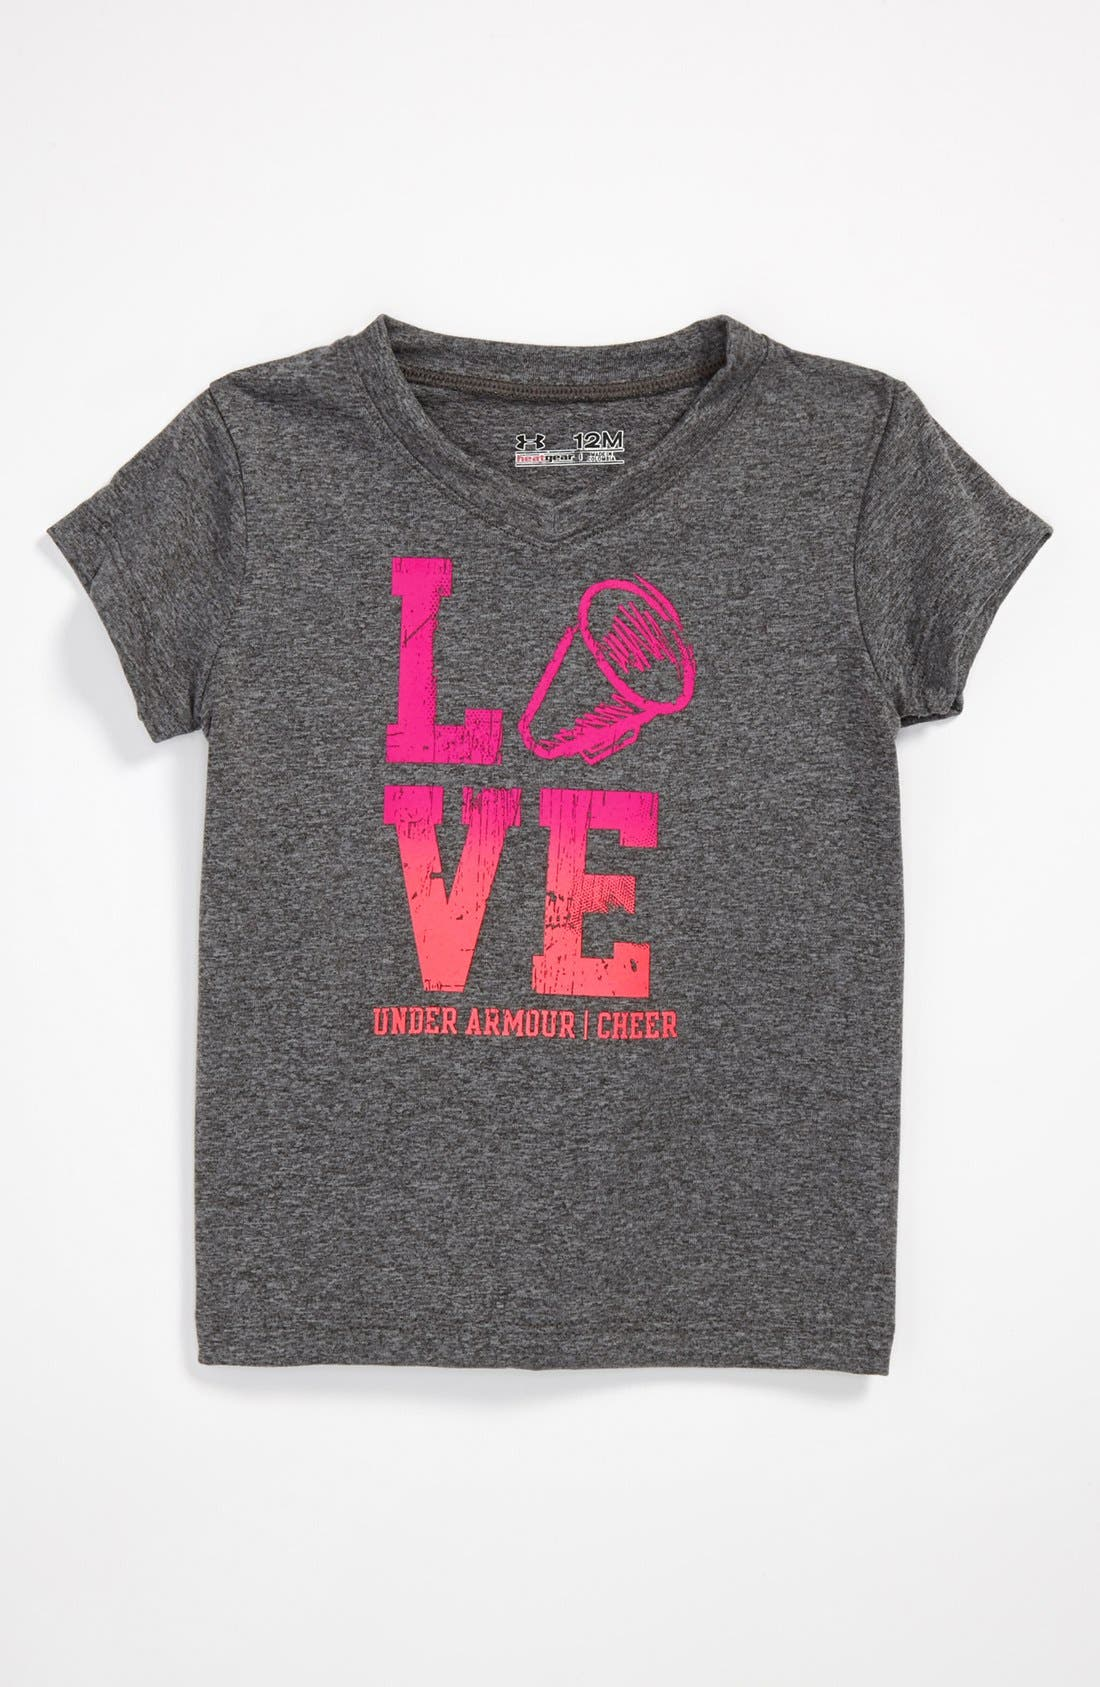 Alternate Image 1 Selected - Under Armour 'Cheer' Tee (Baby Girls)